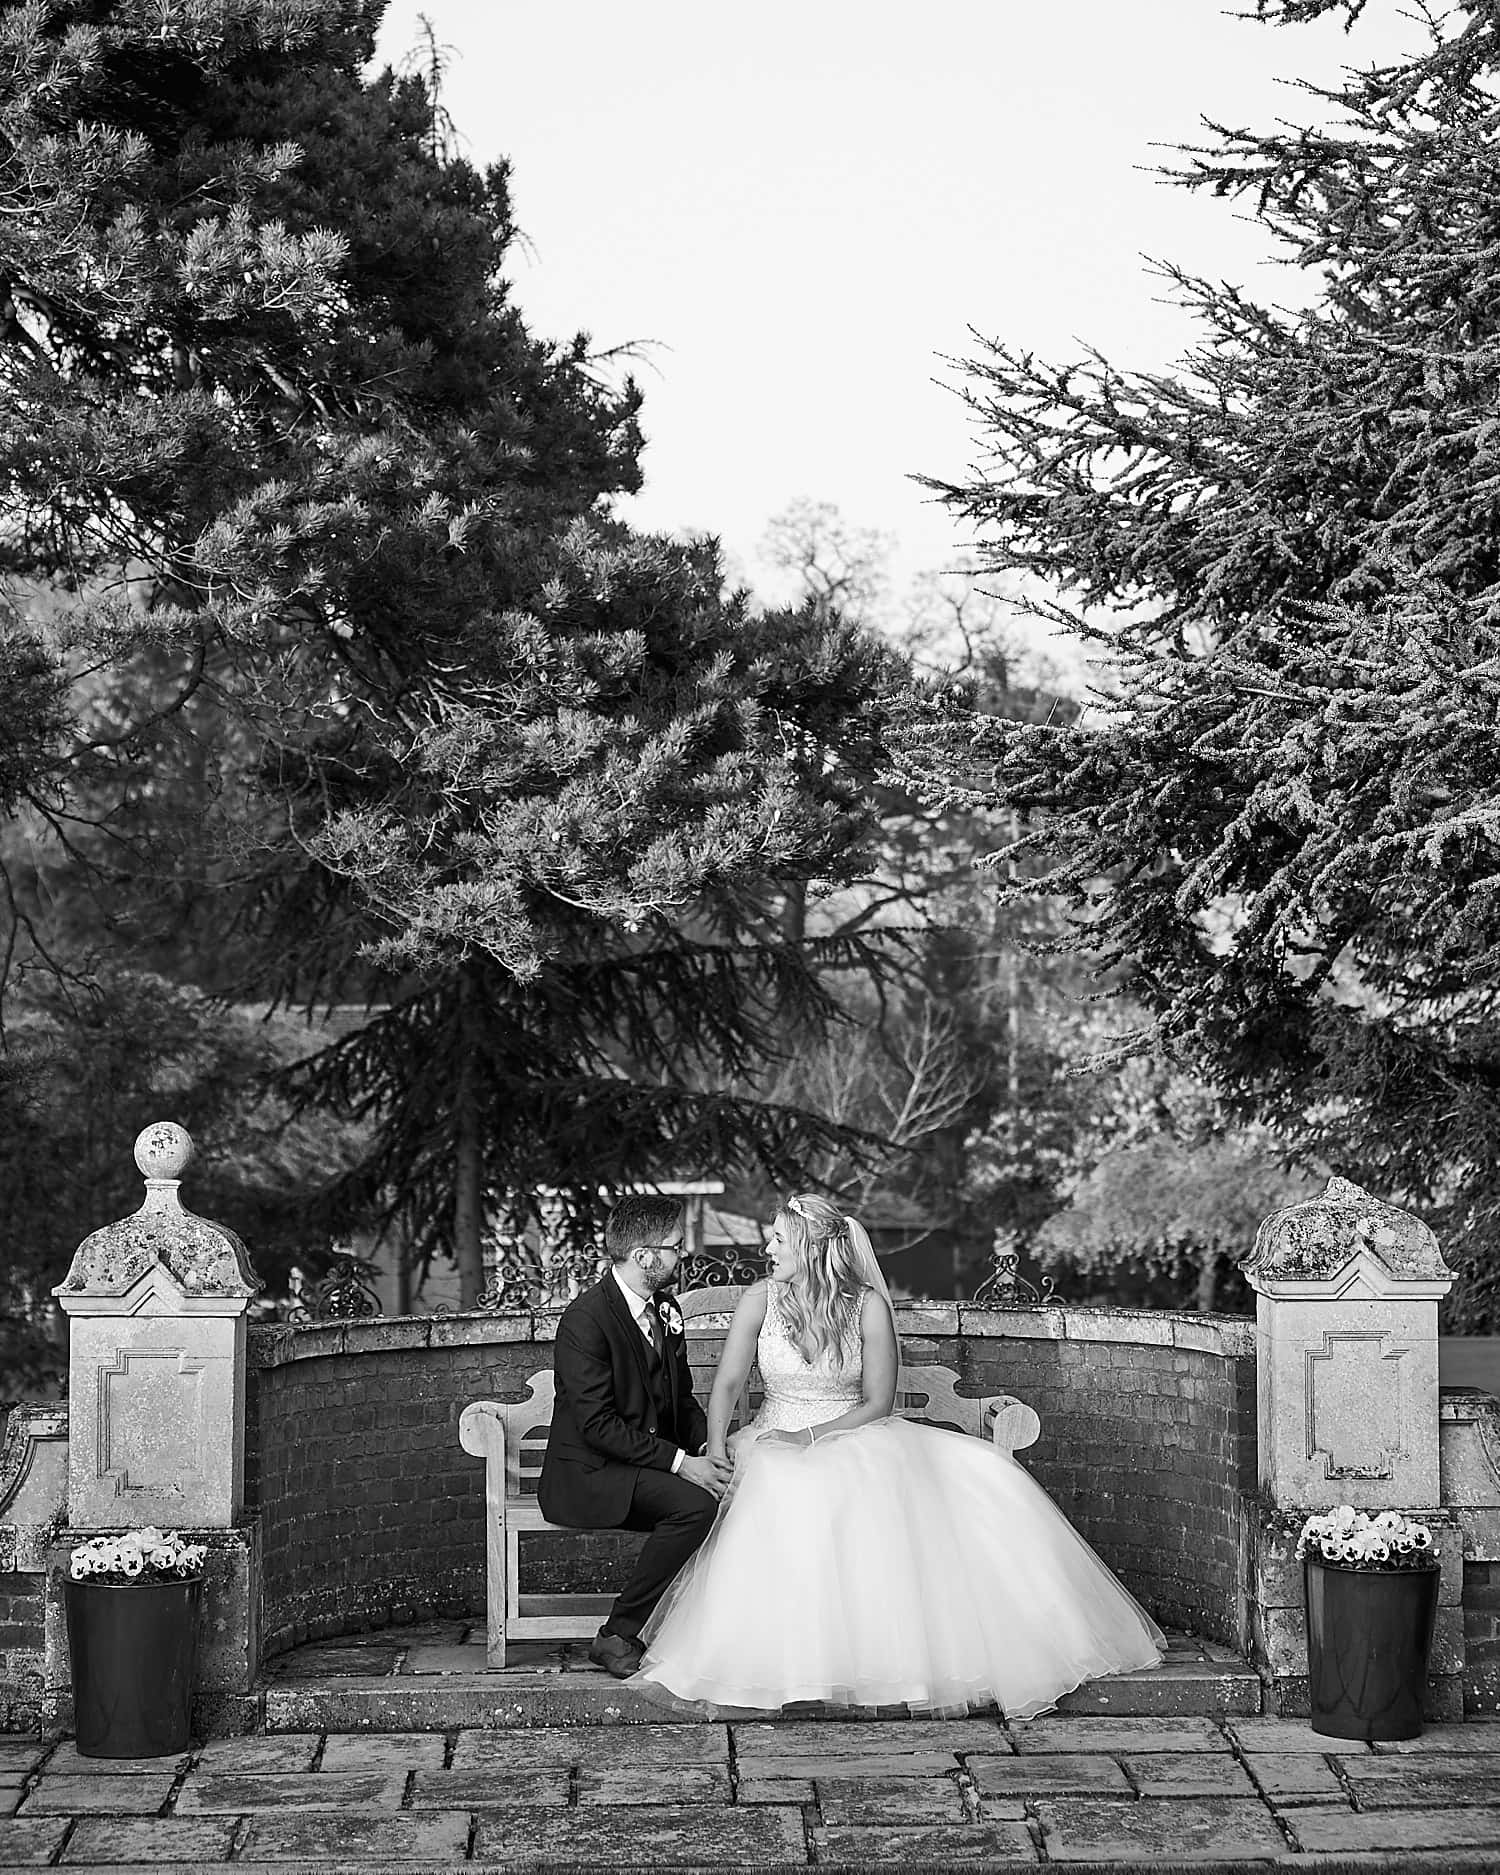 A couple chat on a bench during their wedding day.